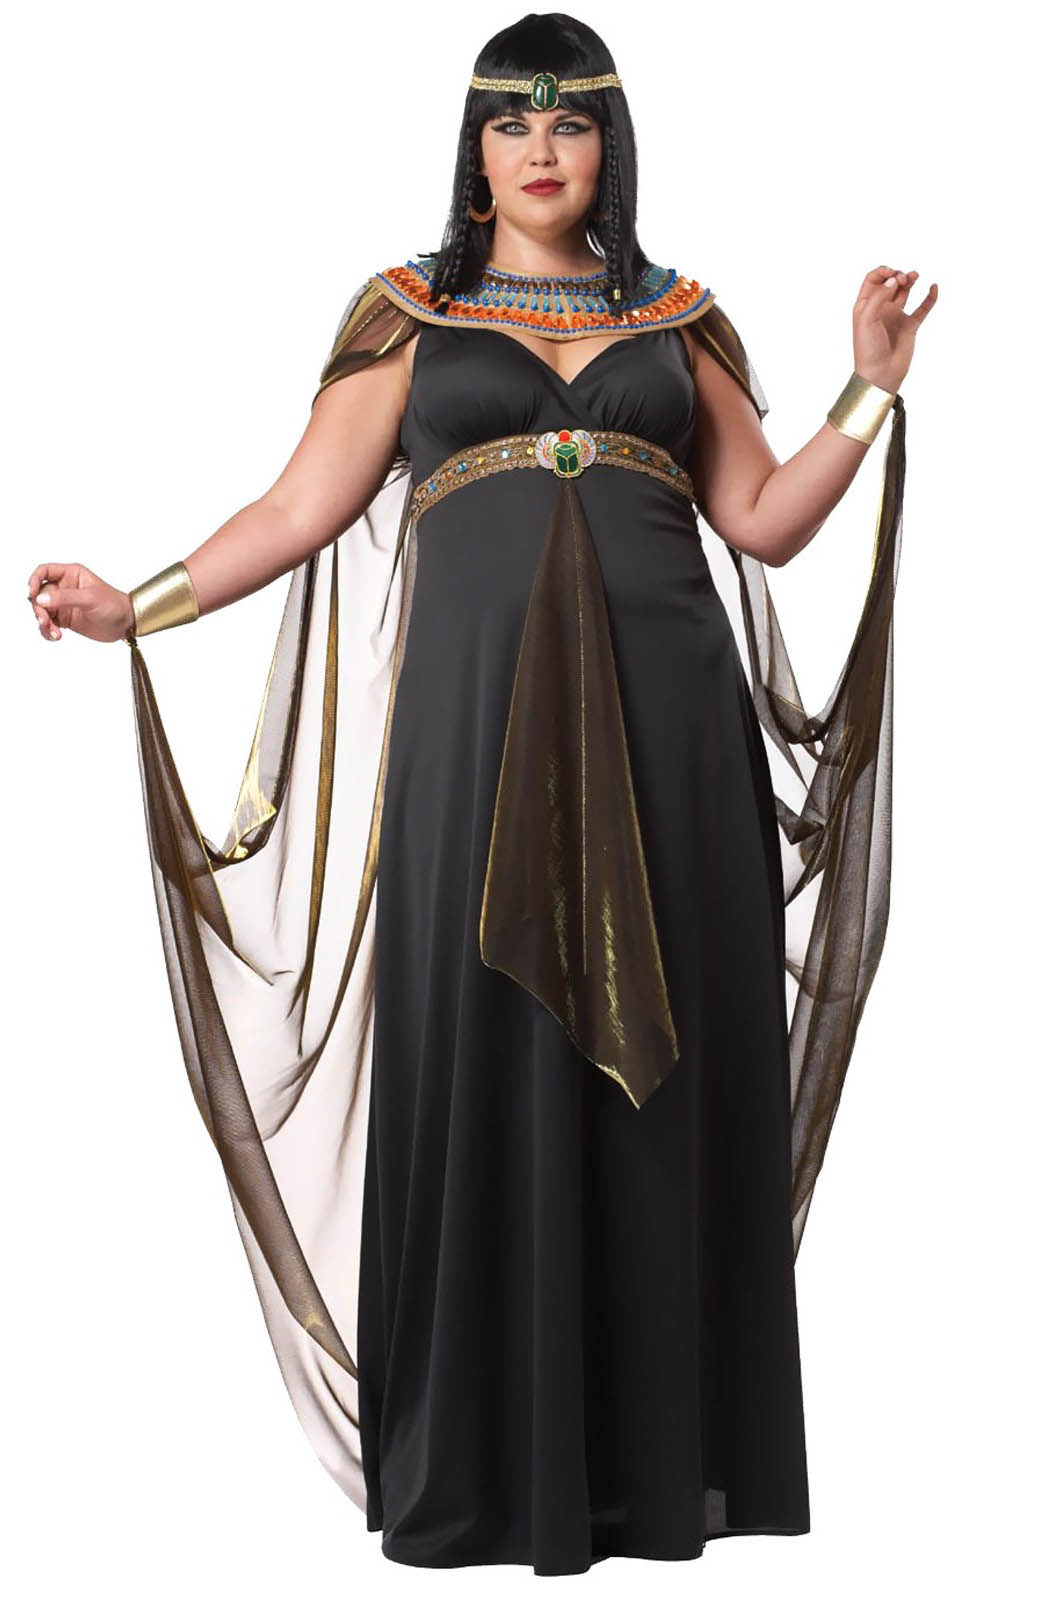 QUEEN Of The Nile Cleopatra Women s Costume Dress Plus Size 1X 2XL 3XL